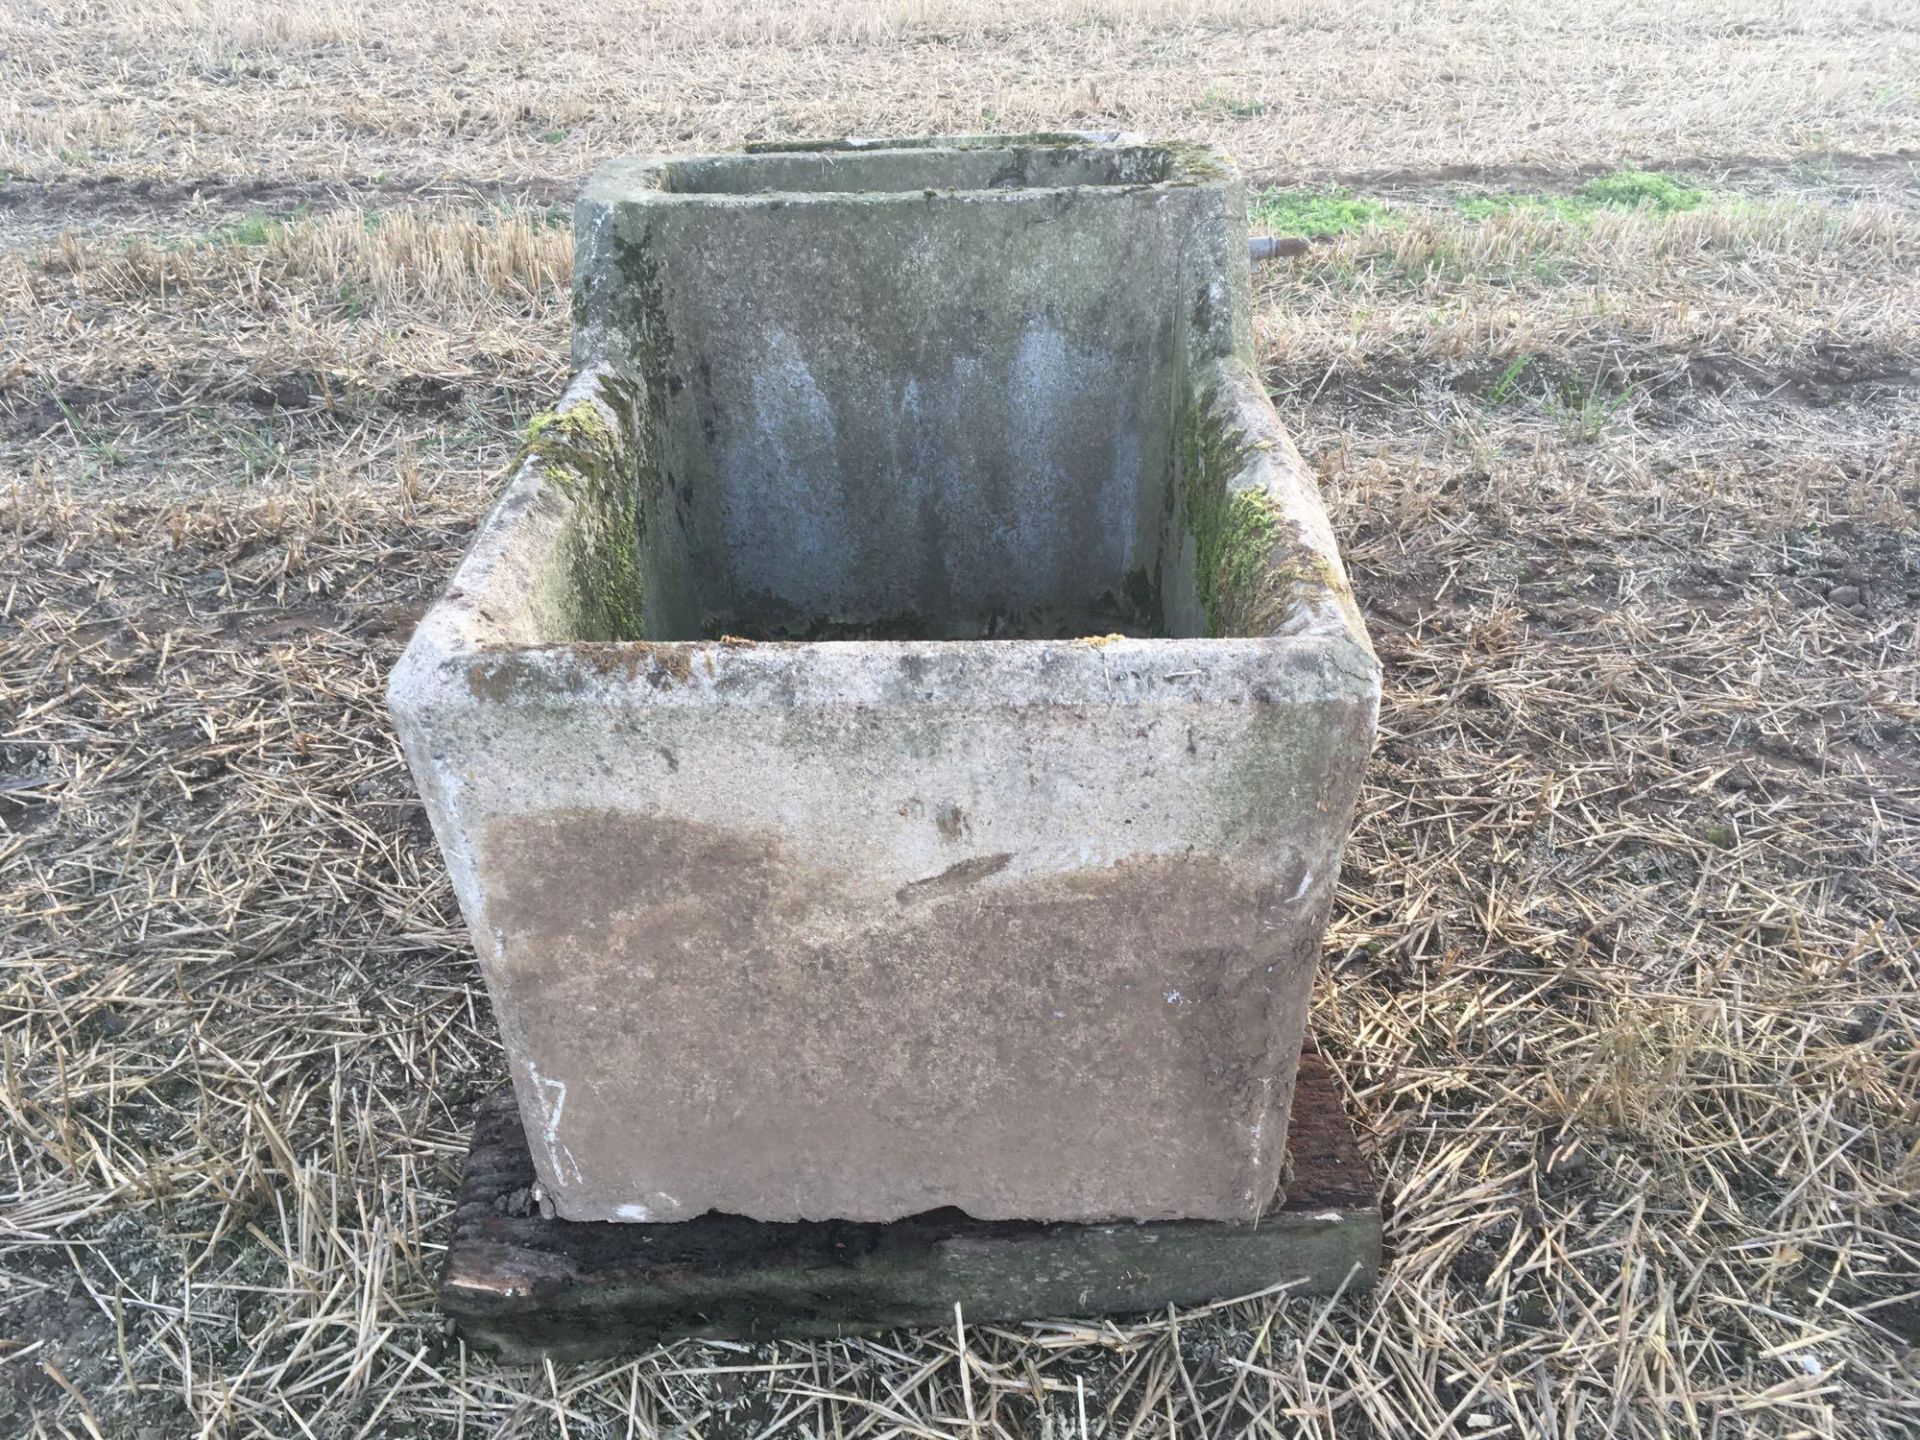 Concrete water trough - Image 2 of 2